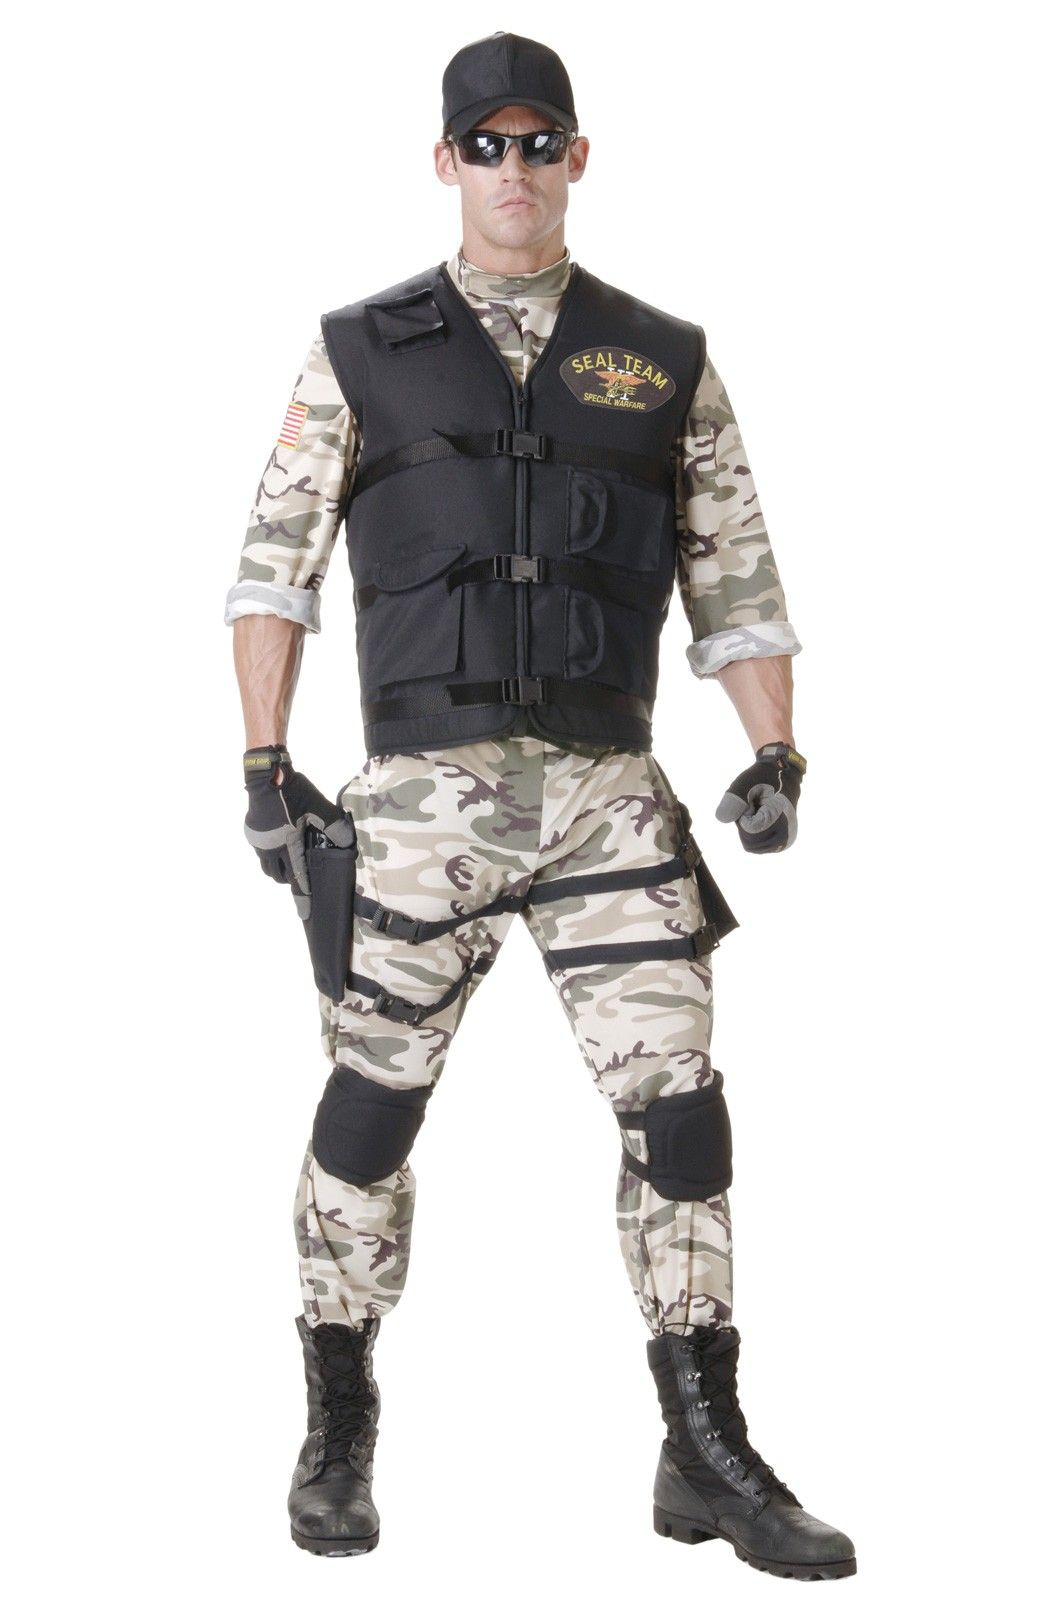 Buy costumes online like the SEAL Team Standard Adult Costume from Australiau0027s leading costume shop.  sc 1 st  Pinterest & SEAL Team Standard Adult Costume   Occupation Costumes   Pinterest ...